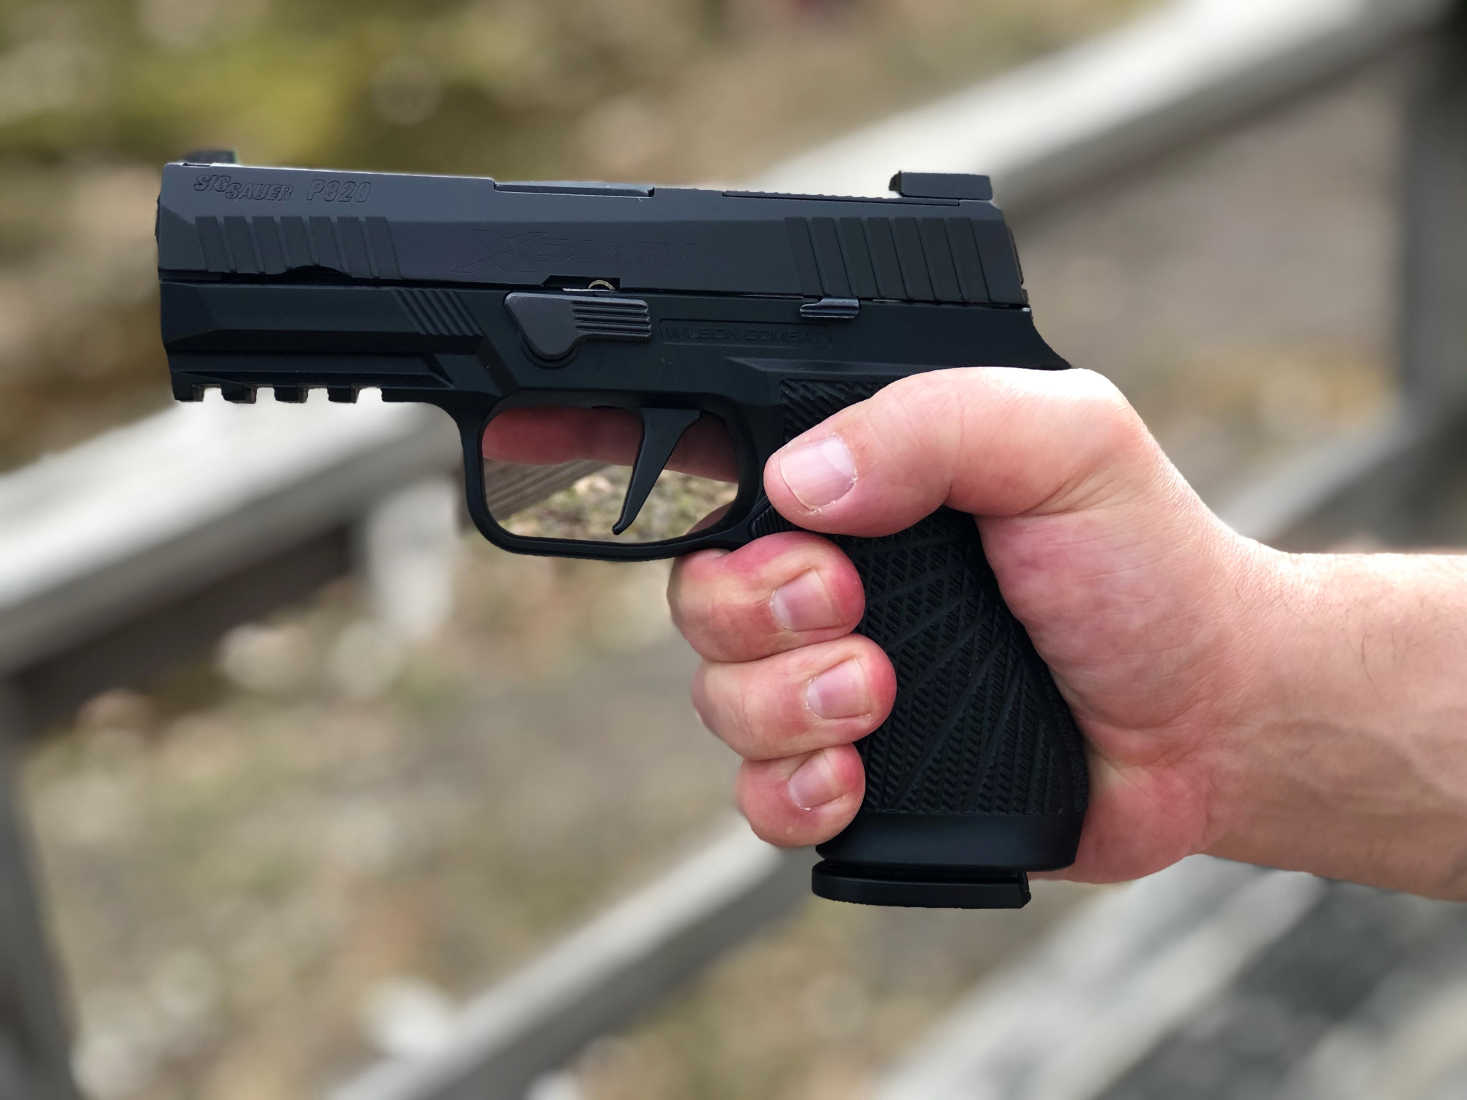 Product Review: Wilson Combat SIG P320 Grip Module